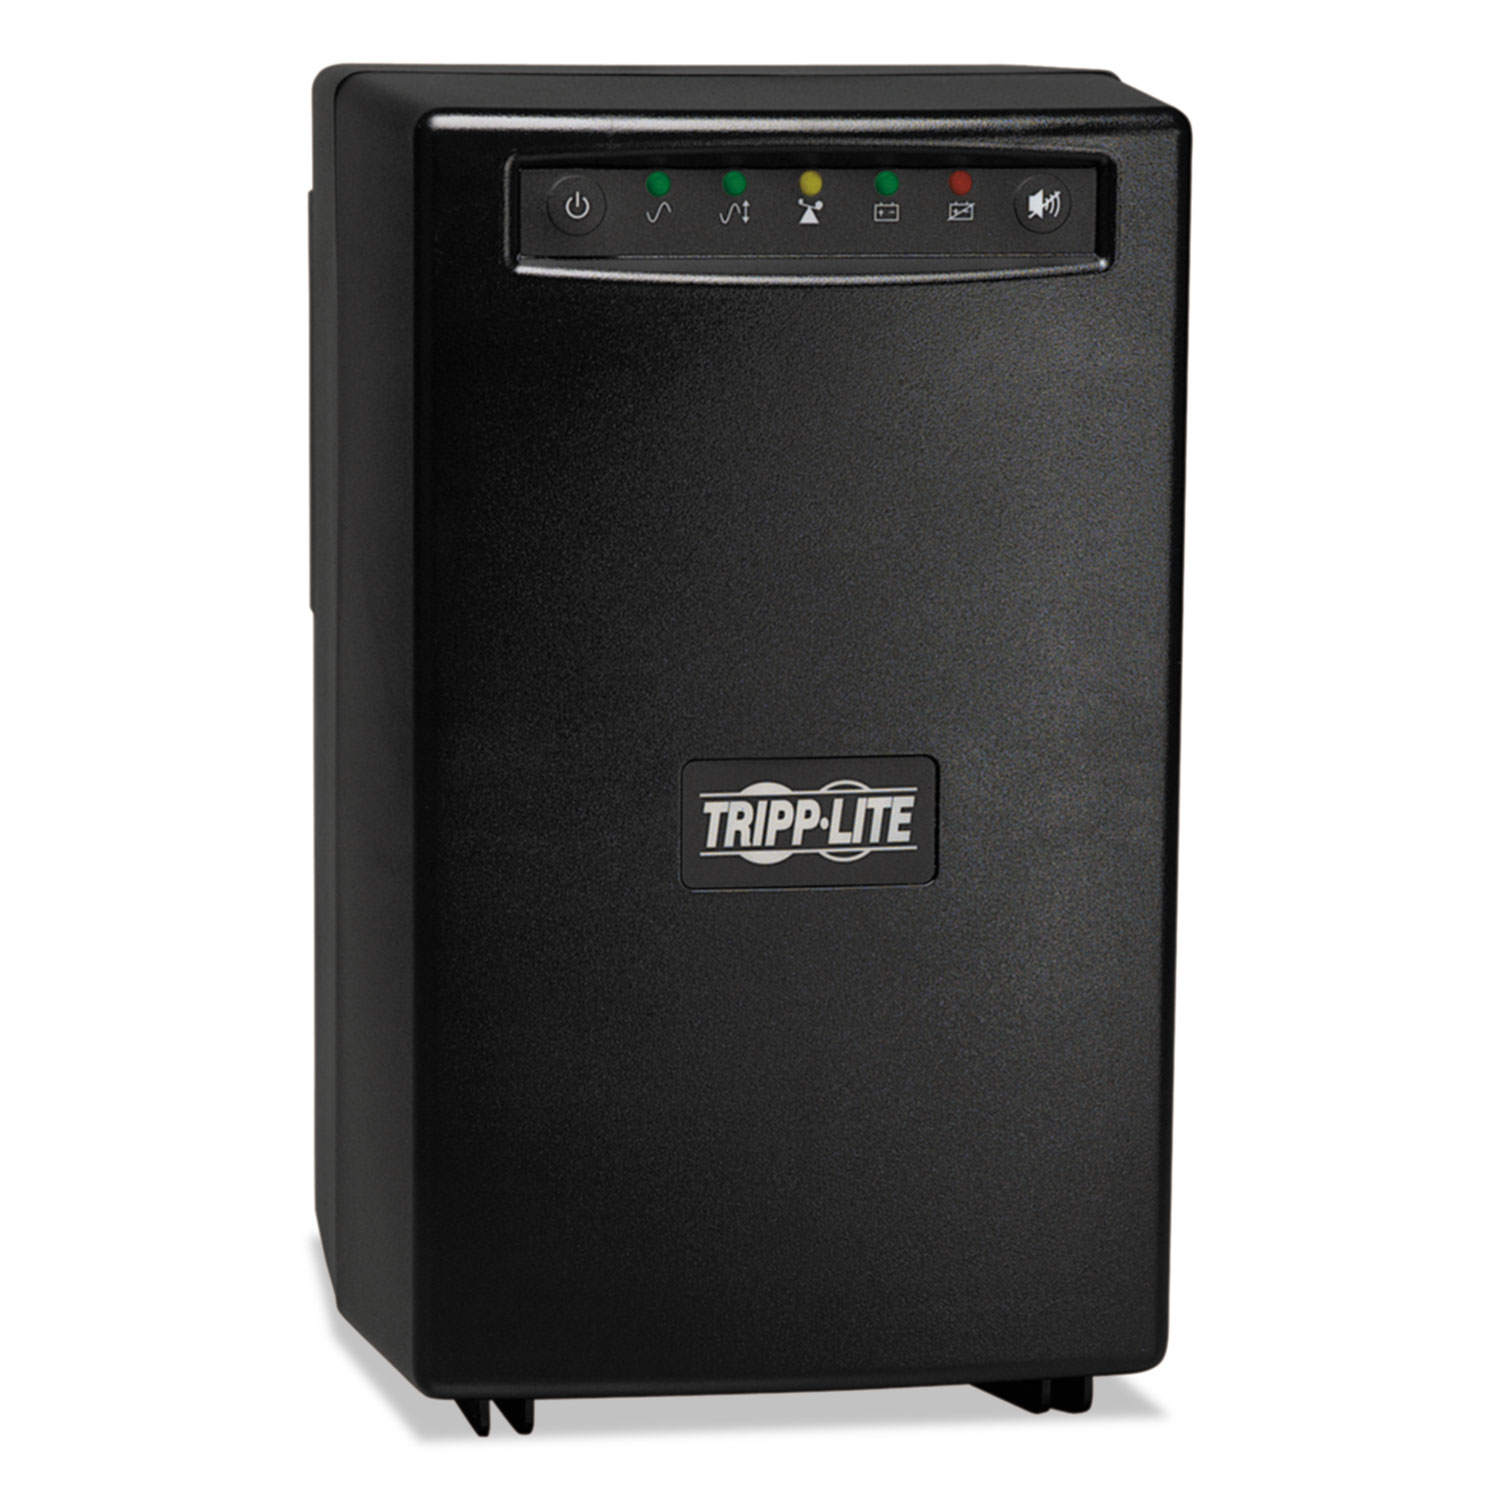 OmniVS Line-Interactive UPS Extended Run Tower, USB, 8 Outlets, 1500VA, 690 J